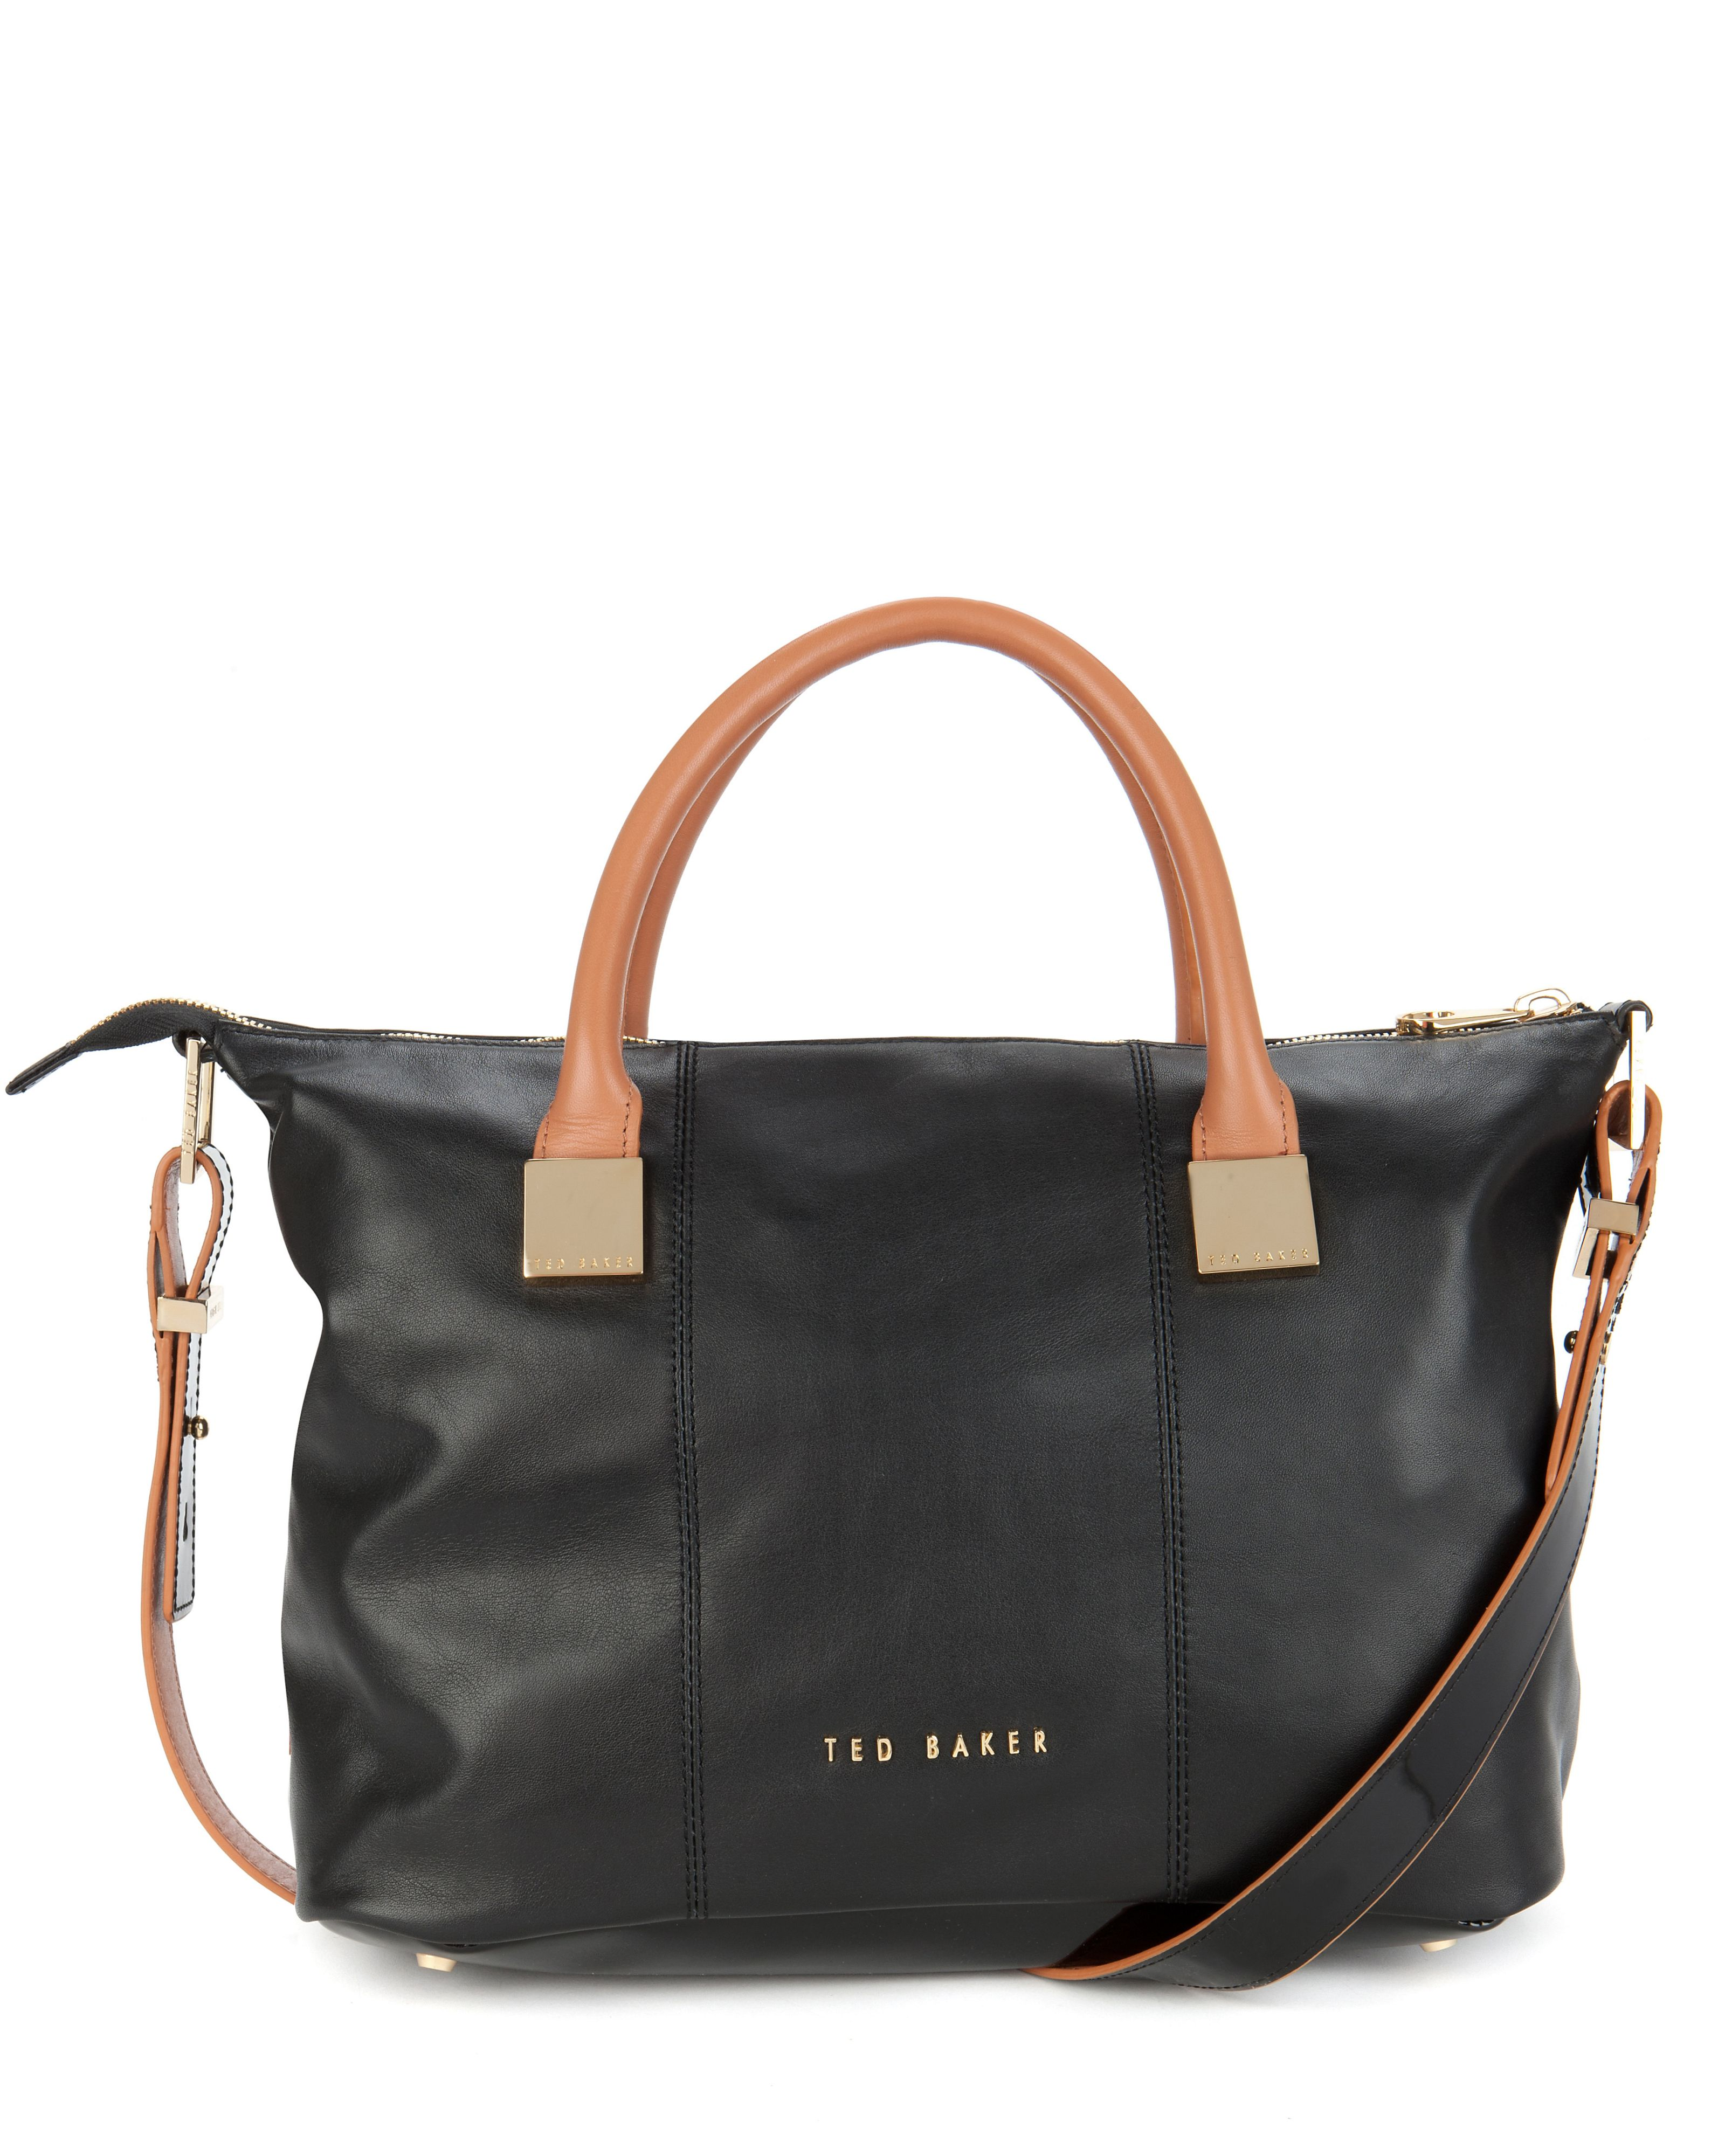 Frimlor metal square tote bag